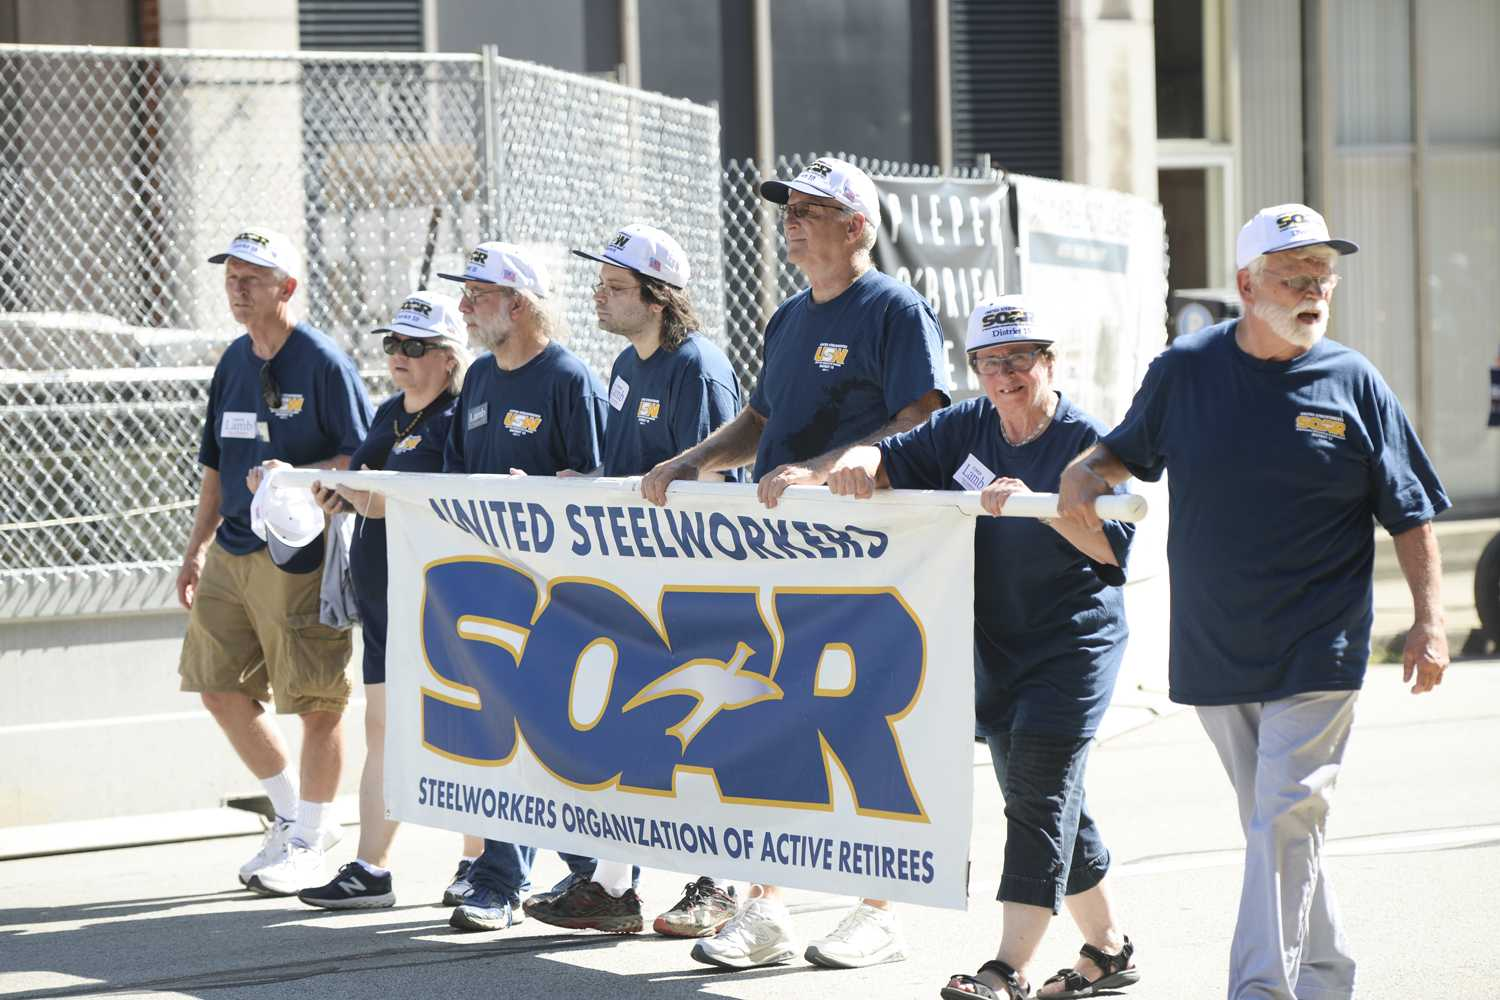 Steelworkers Organization of Active Retirees marches in Pittsburgh's Labor Day parade Monday morning.